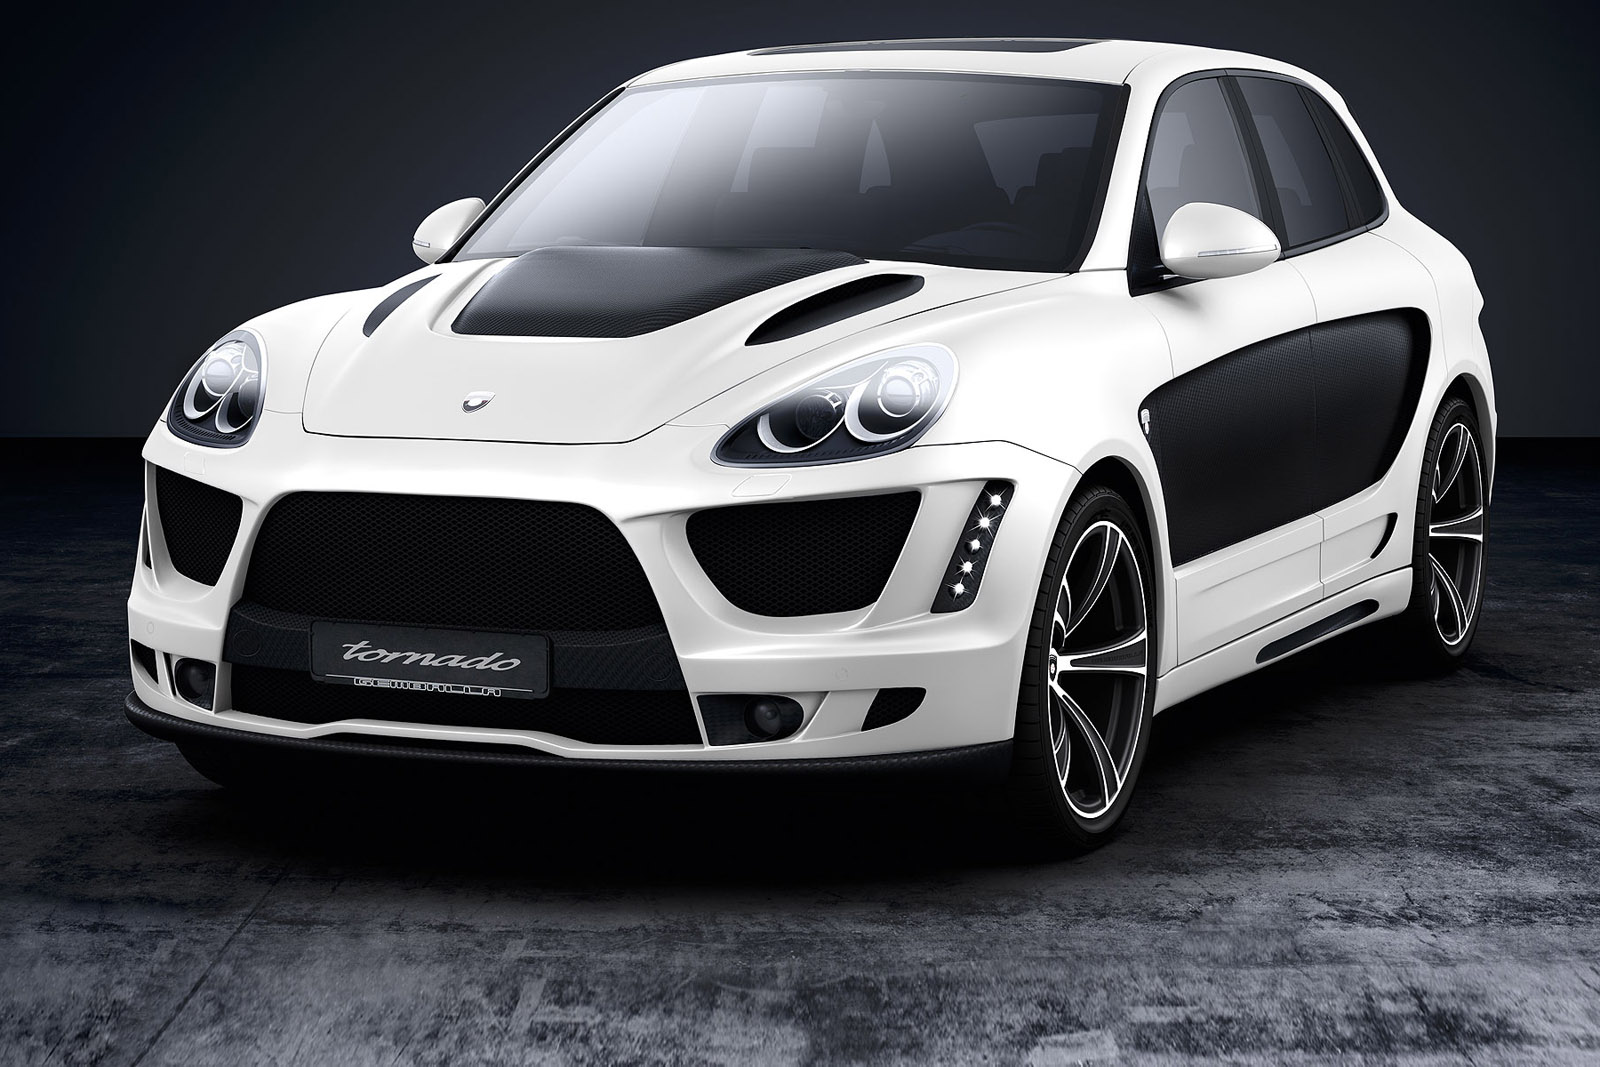 Gemballa Introduces Tuning Package for New Porsche Cayenne